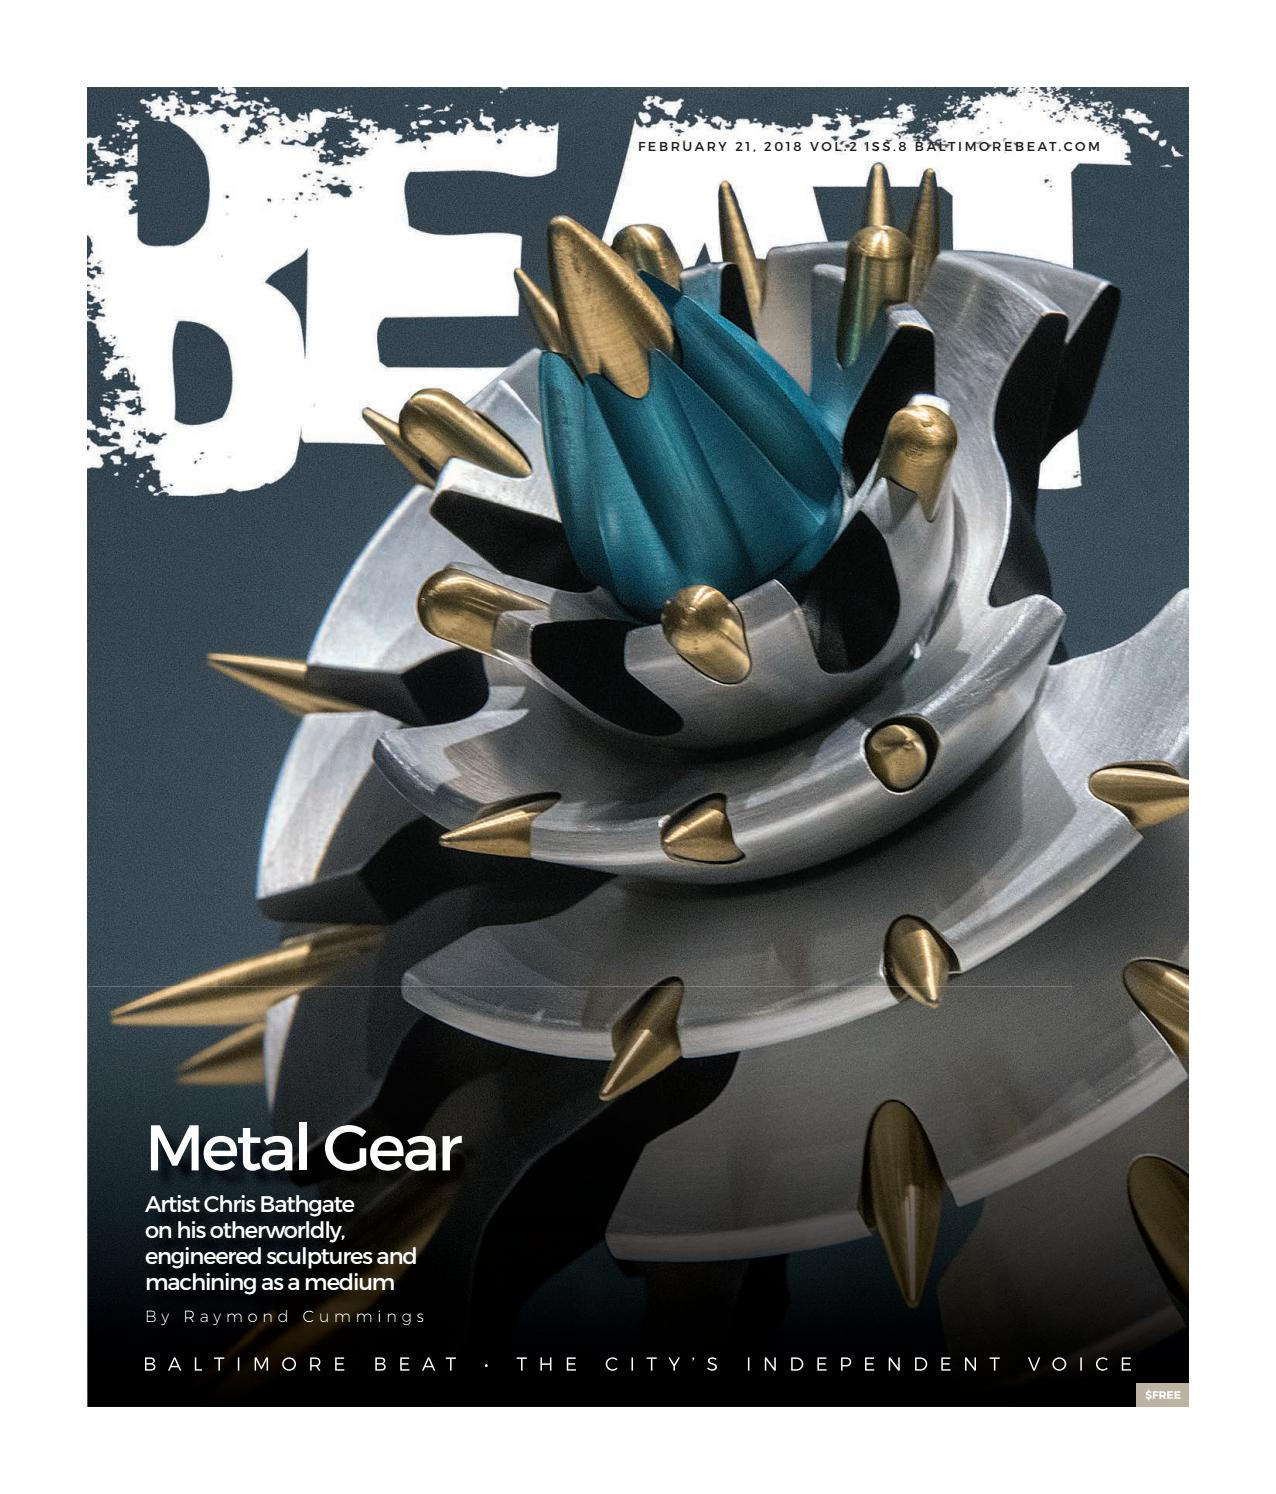 Baltimorebeat.com volume 2 issue 8 february 21 2018 by baltimore